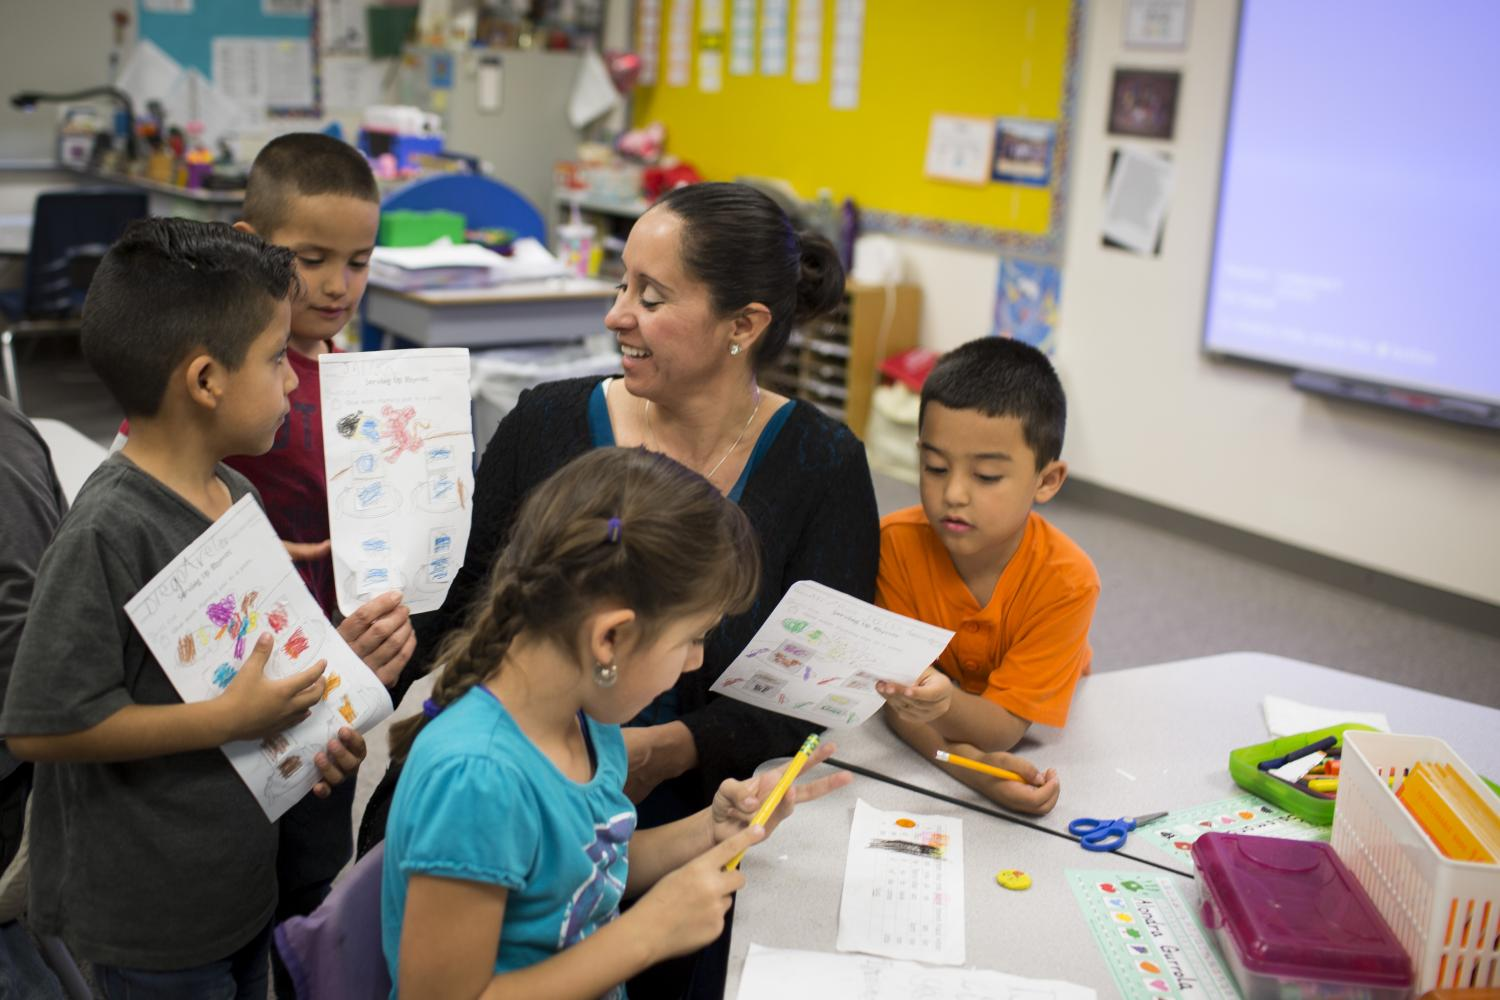 Rainbow Valley Elementary School English Language Acquisition Teacher Bedelicia Reyna Is Approached By Several Students Hoping To Show Her Their Work In Class. Photo Courtesy Caitlin O'Hara. Story Link: Https://kjzz.org/content/469898/arizonas-ell-classrooms-struggle-teacher-shortages-low-graduation-rates